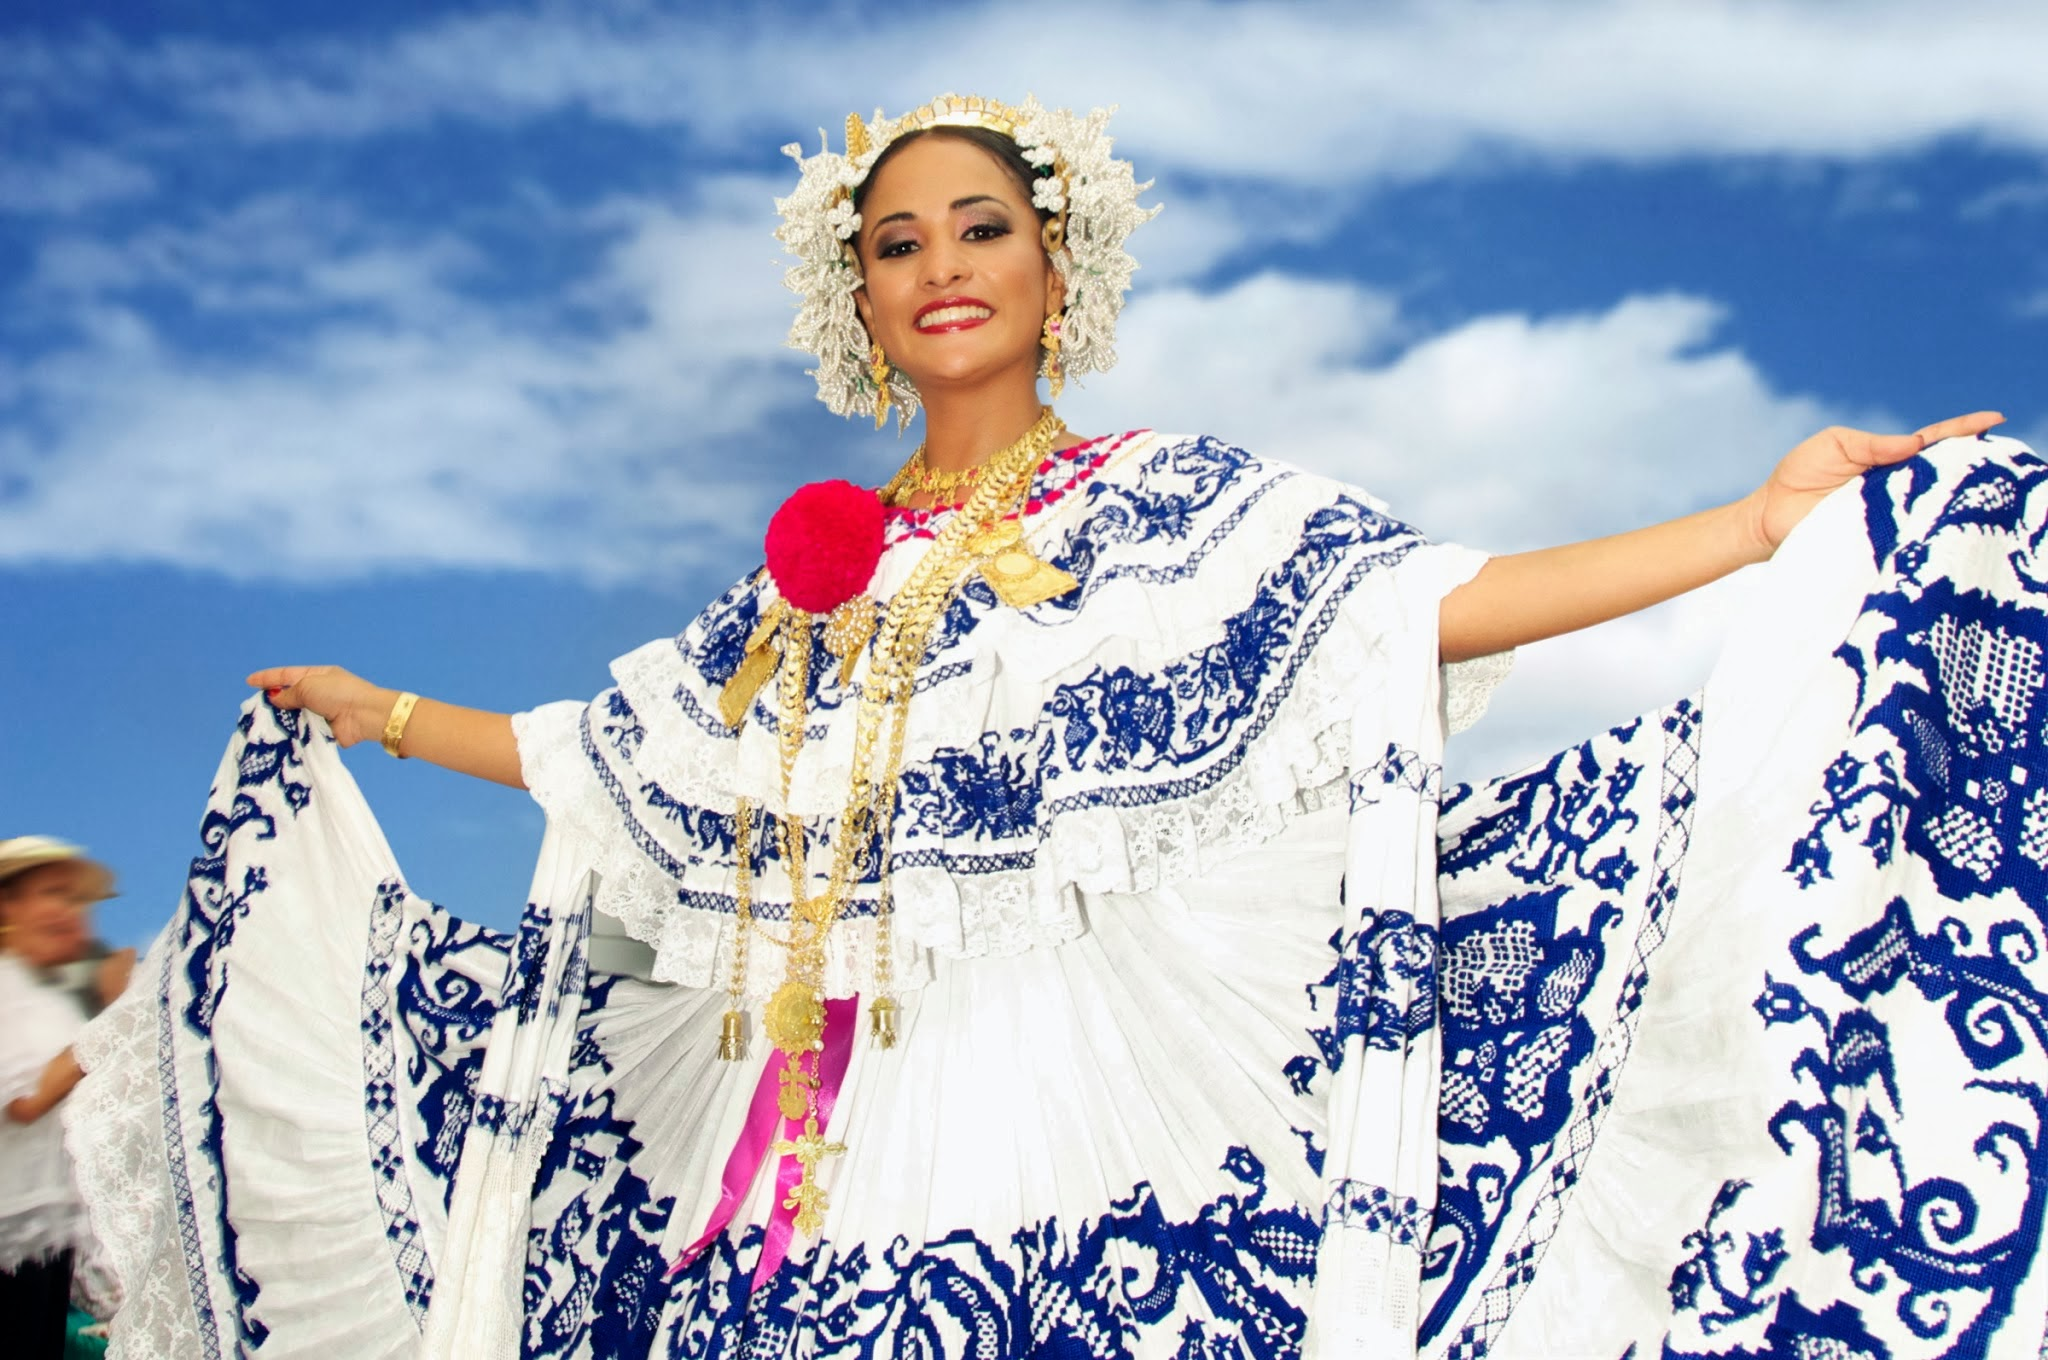 Panama culture and folklore - Photo credit to Visitpanama.com - PANAMA ...